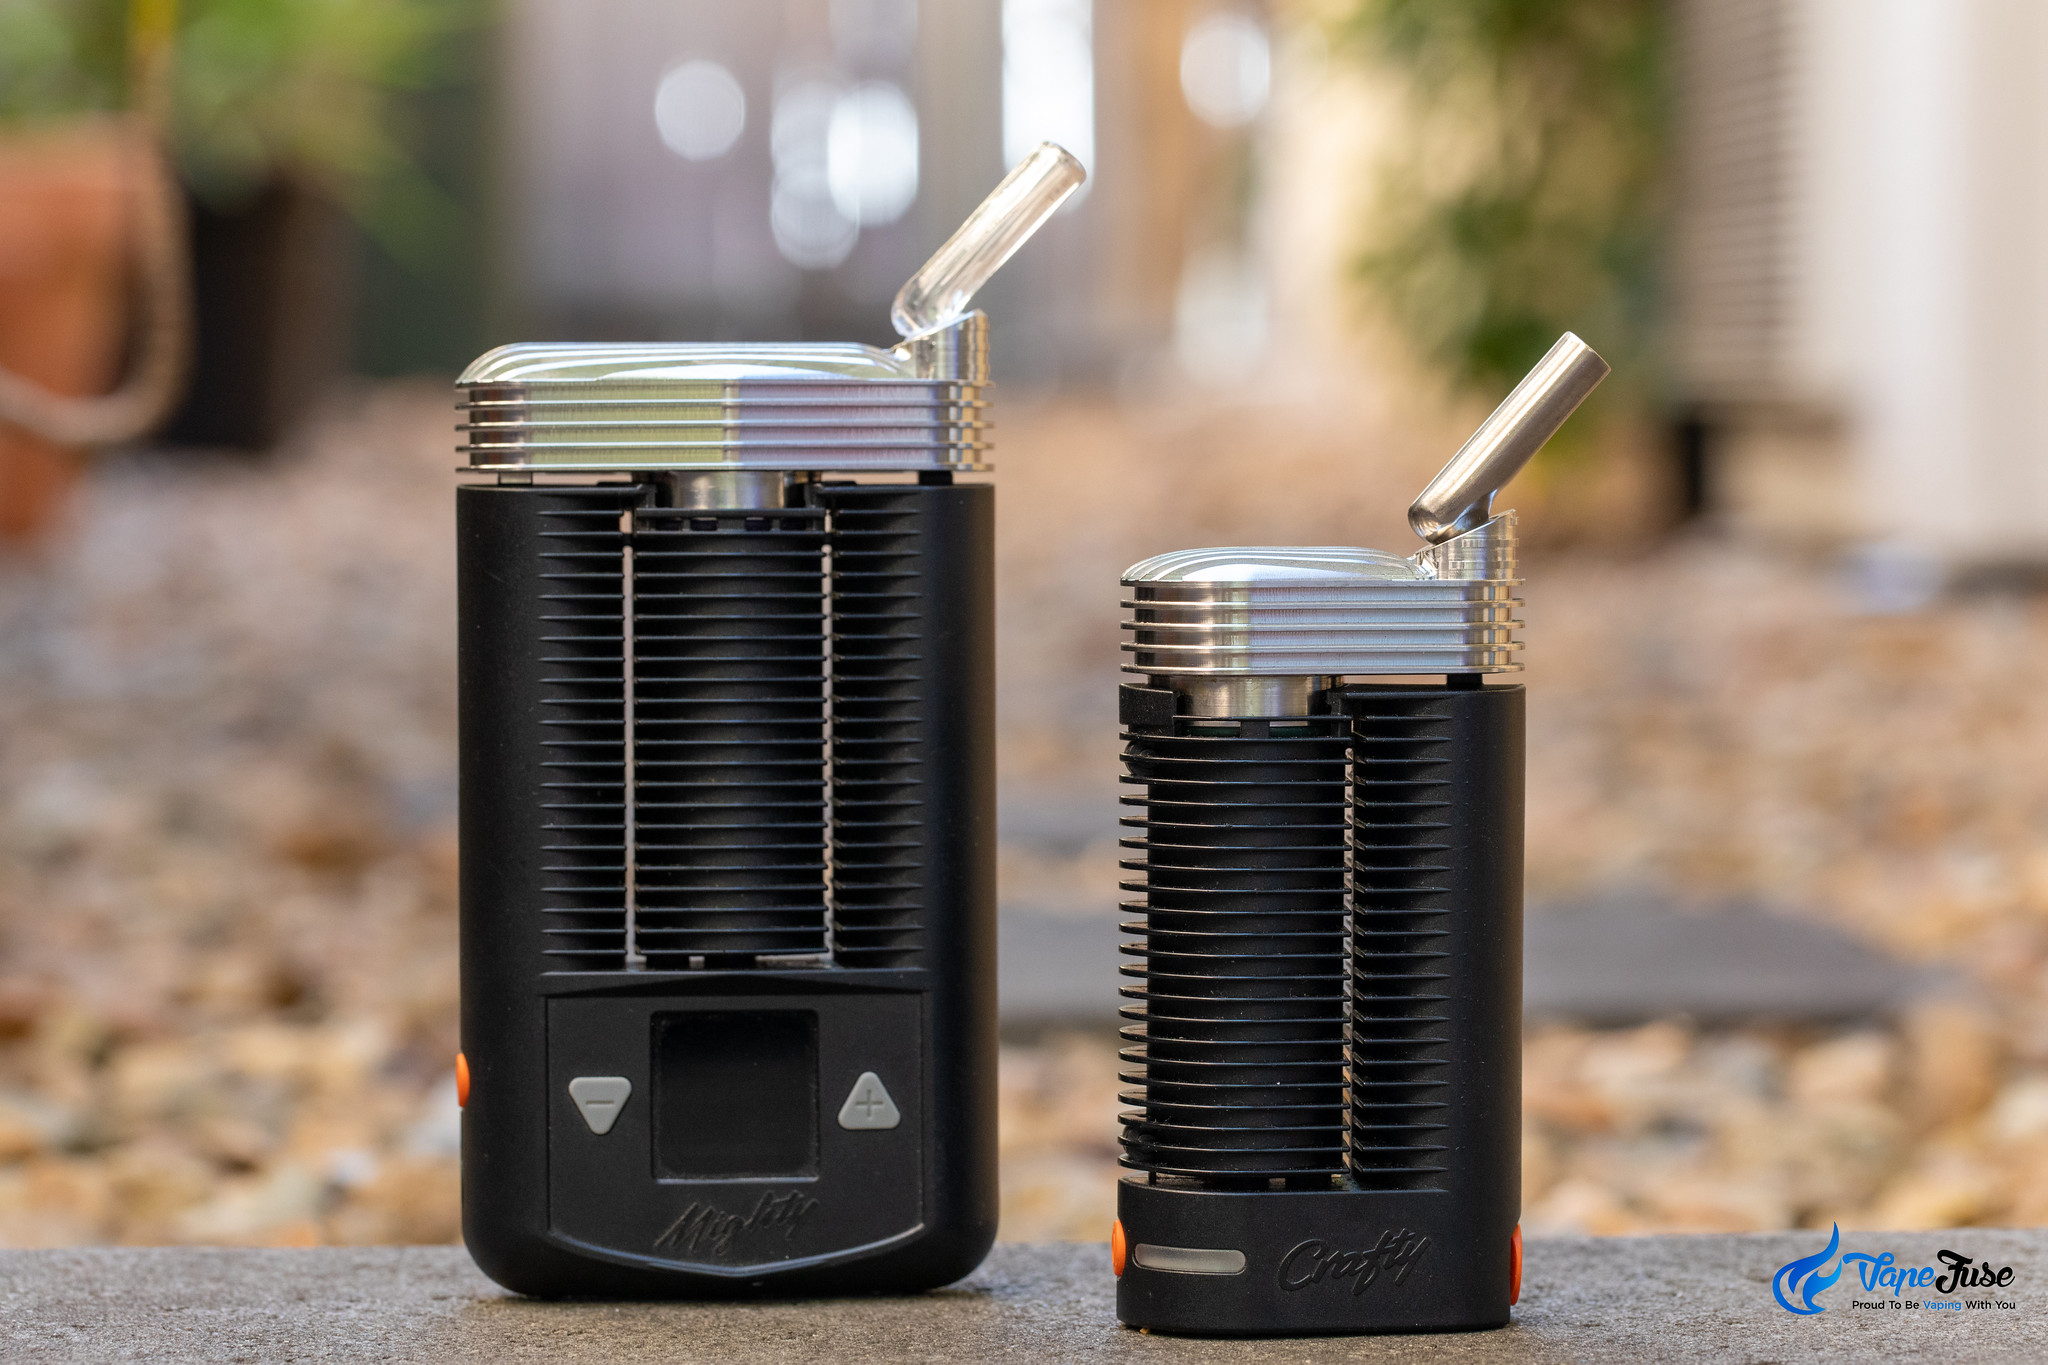 French Touch stainless steel cooling unit for Mighty and Crafty Vaporizers